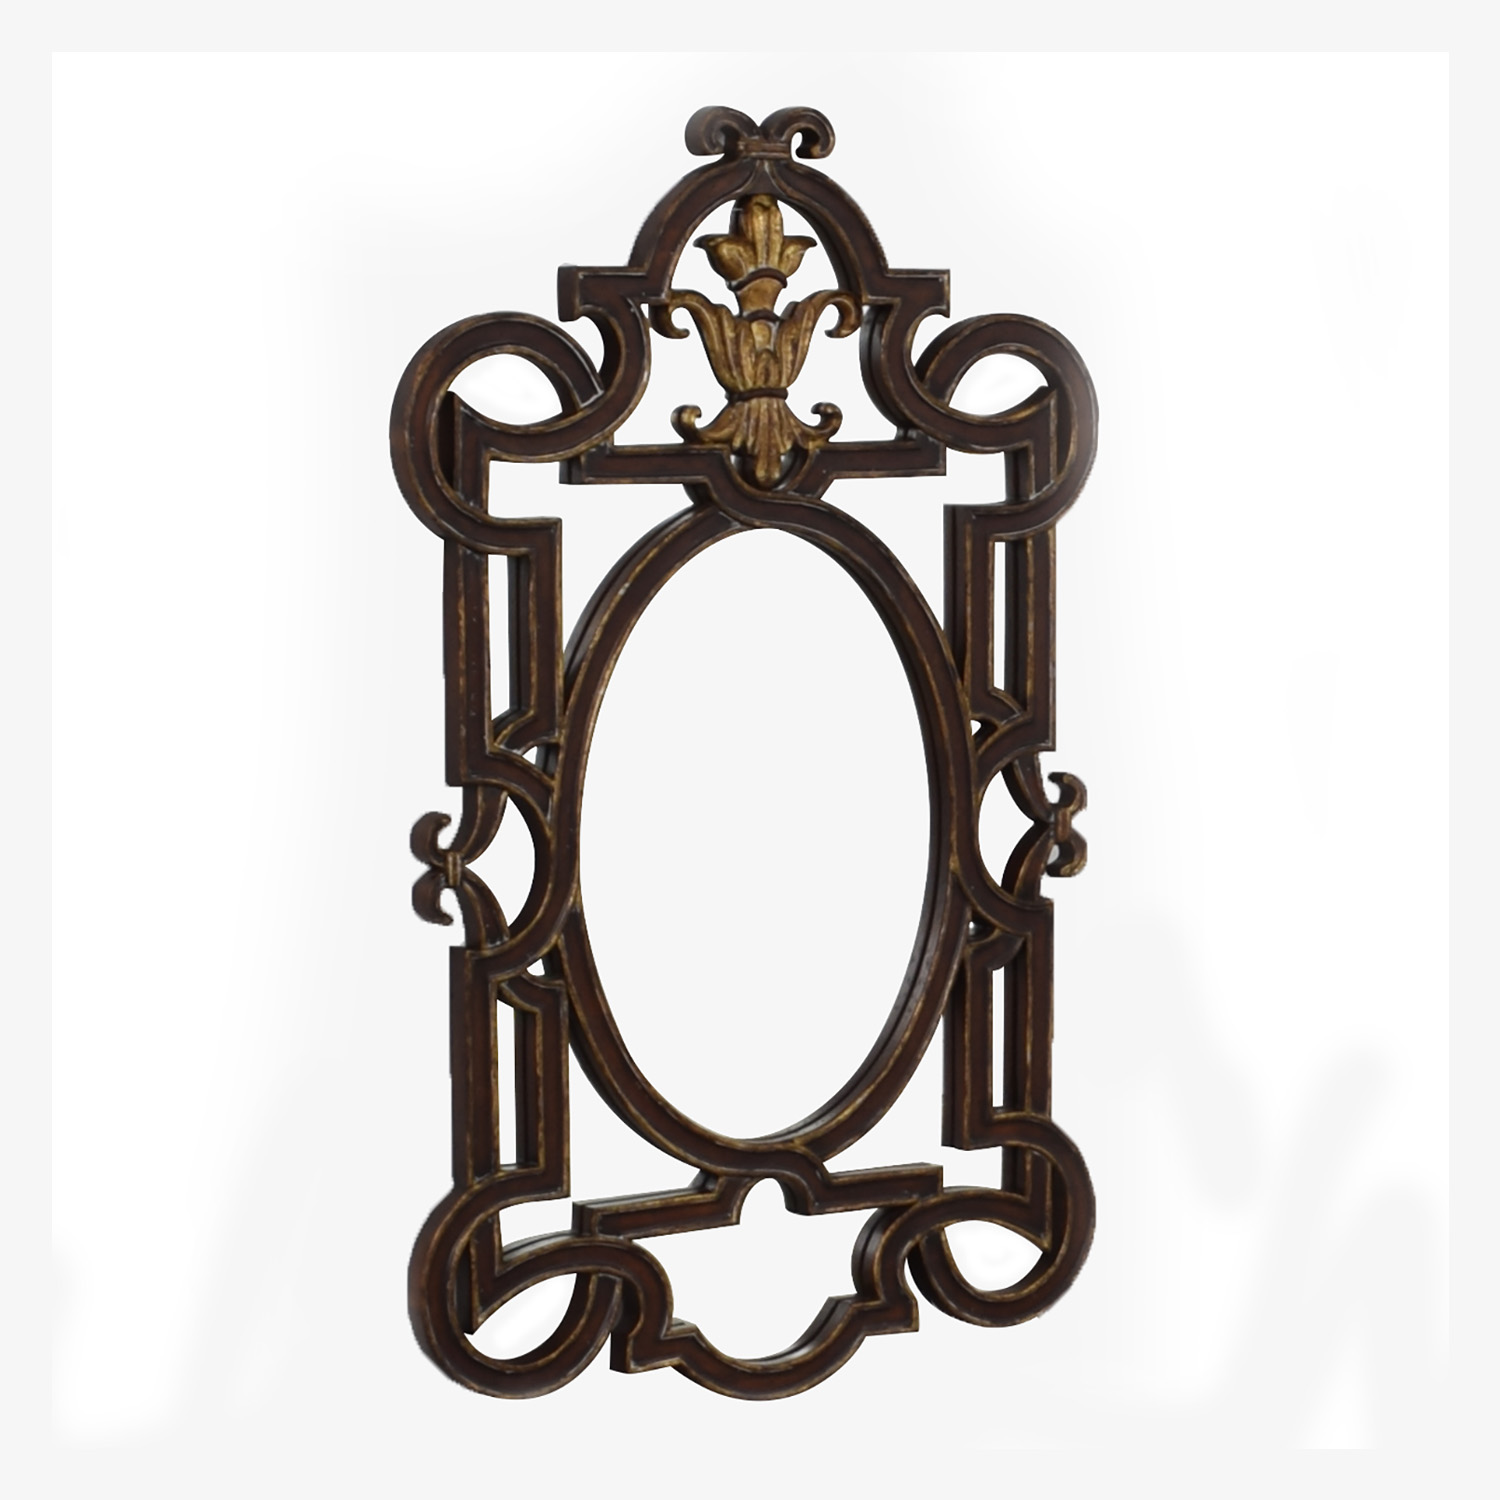 La Barge La Barge Distressed Carved Wood Wall Mirror price